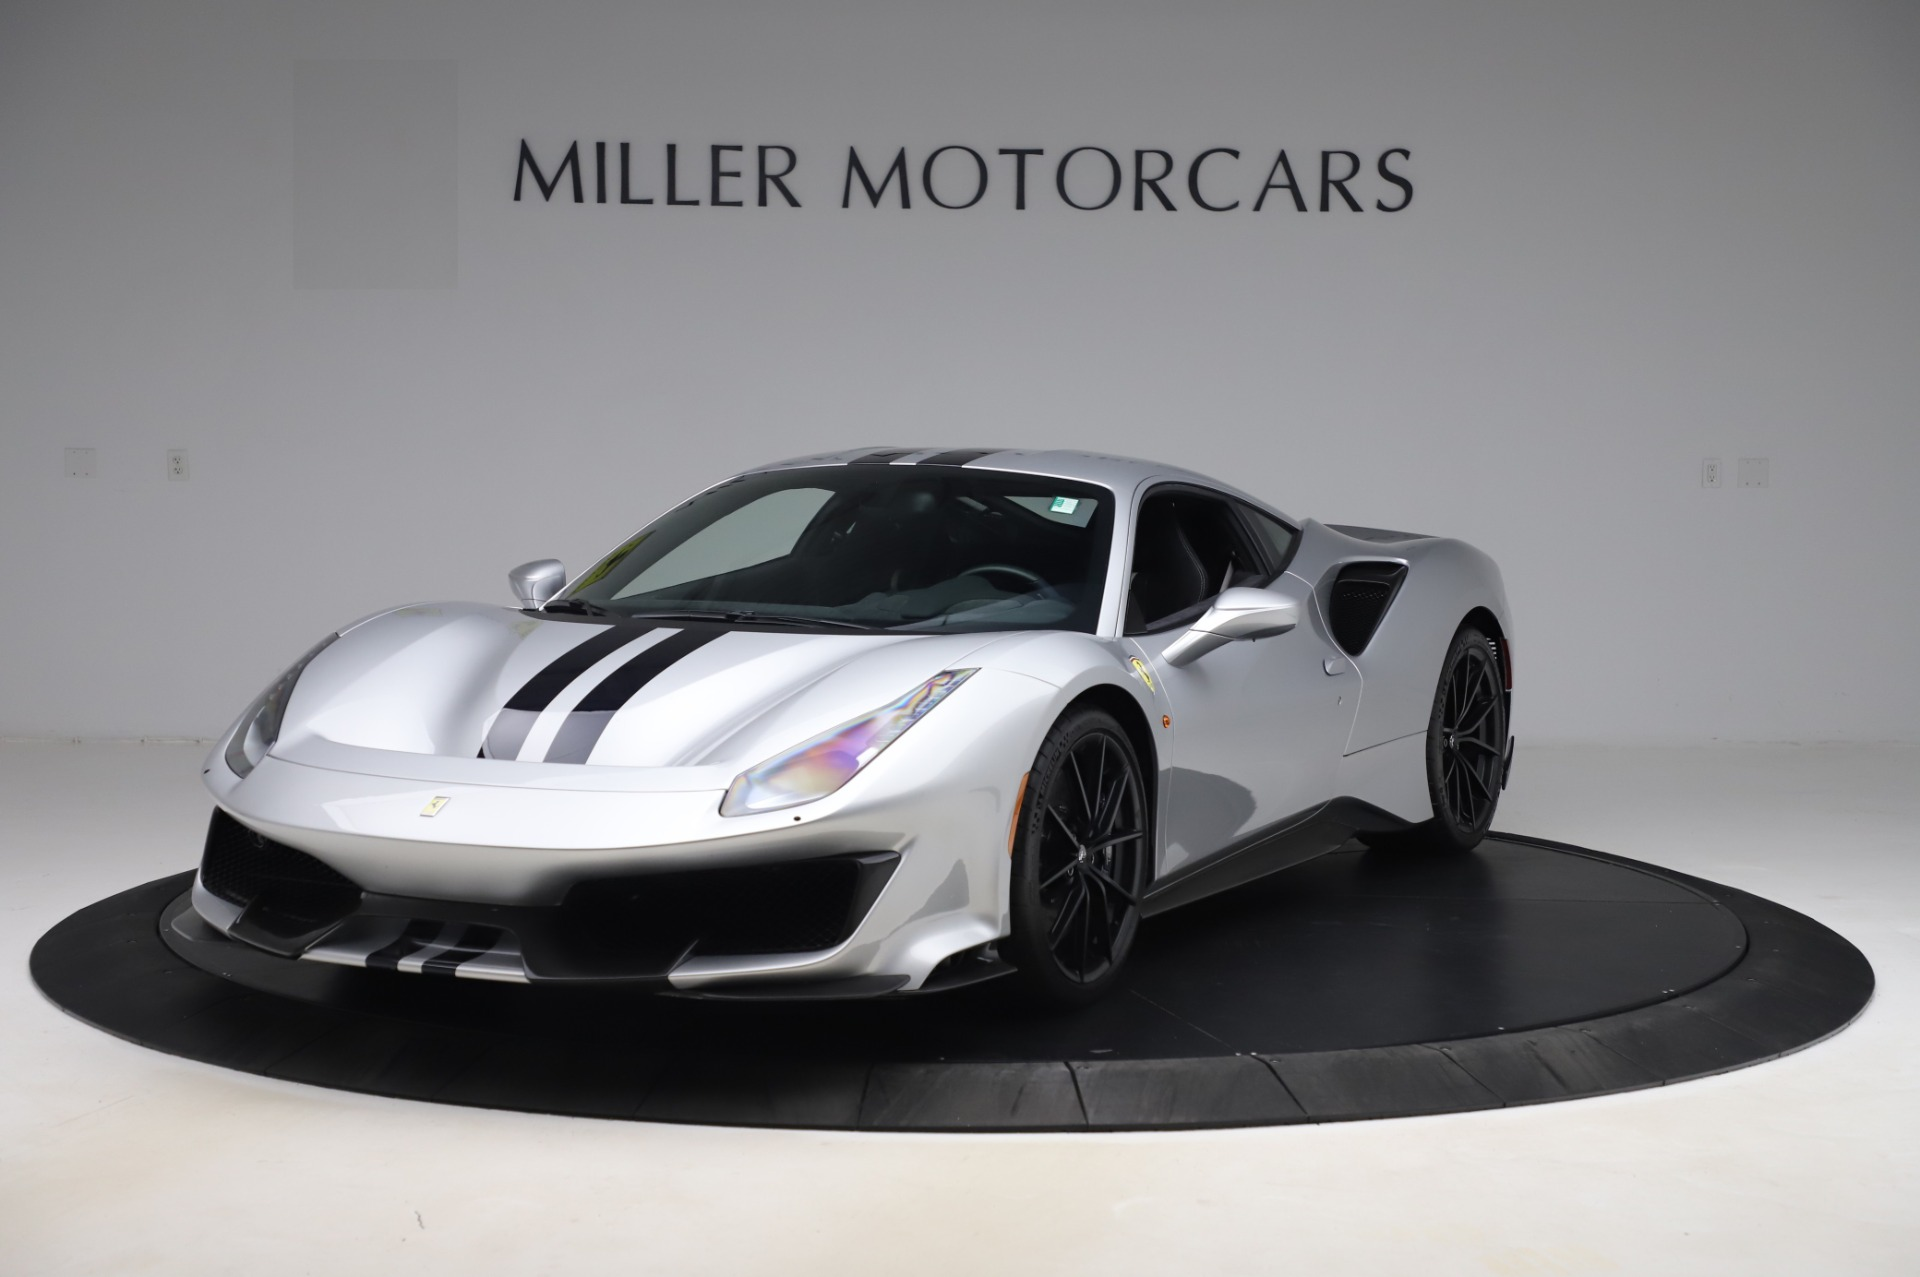 Used 2019 Ferrari 488 Pista for sale $445,900 at Rolls-Royce Motor Cars Greenwich in Greenwich CT 06830 1